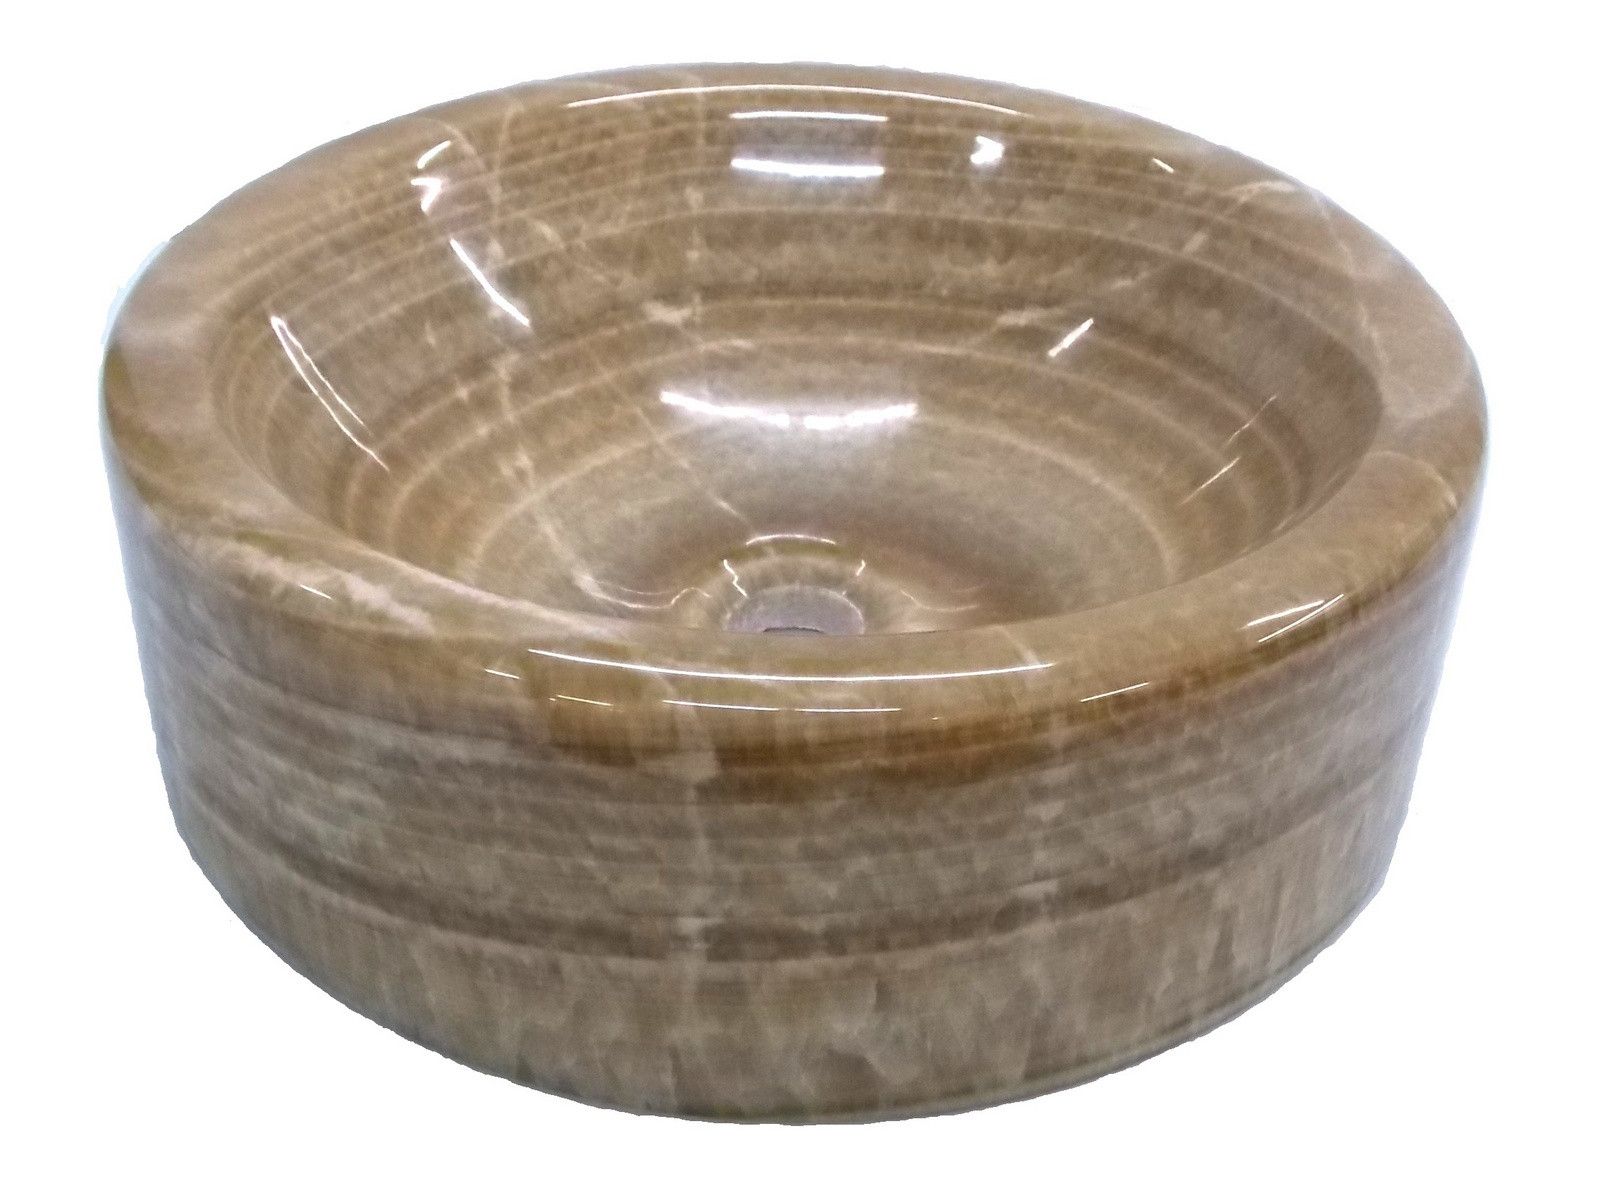 Eden Bath EB_S036BO-P Single Bowl Barrel Vessel Sink In Brown Onyx Polished